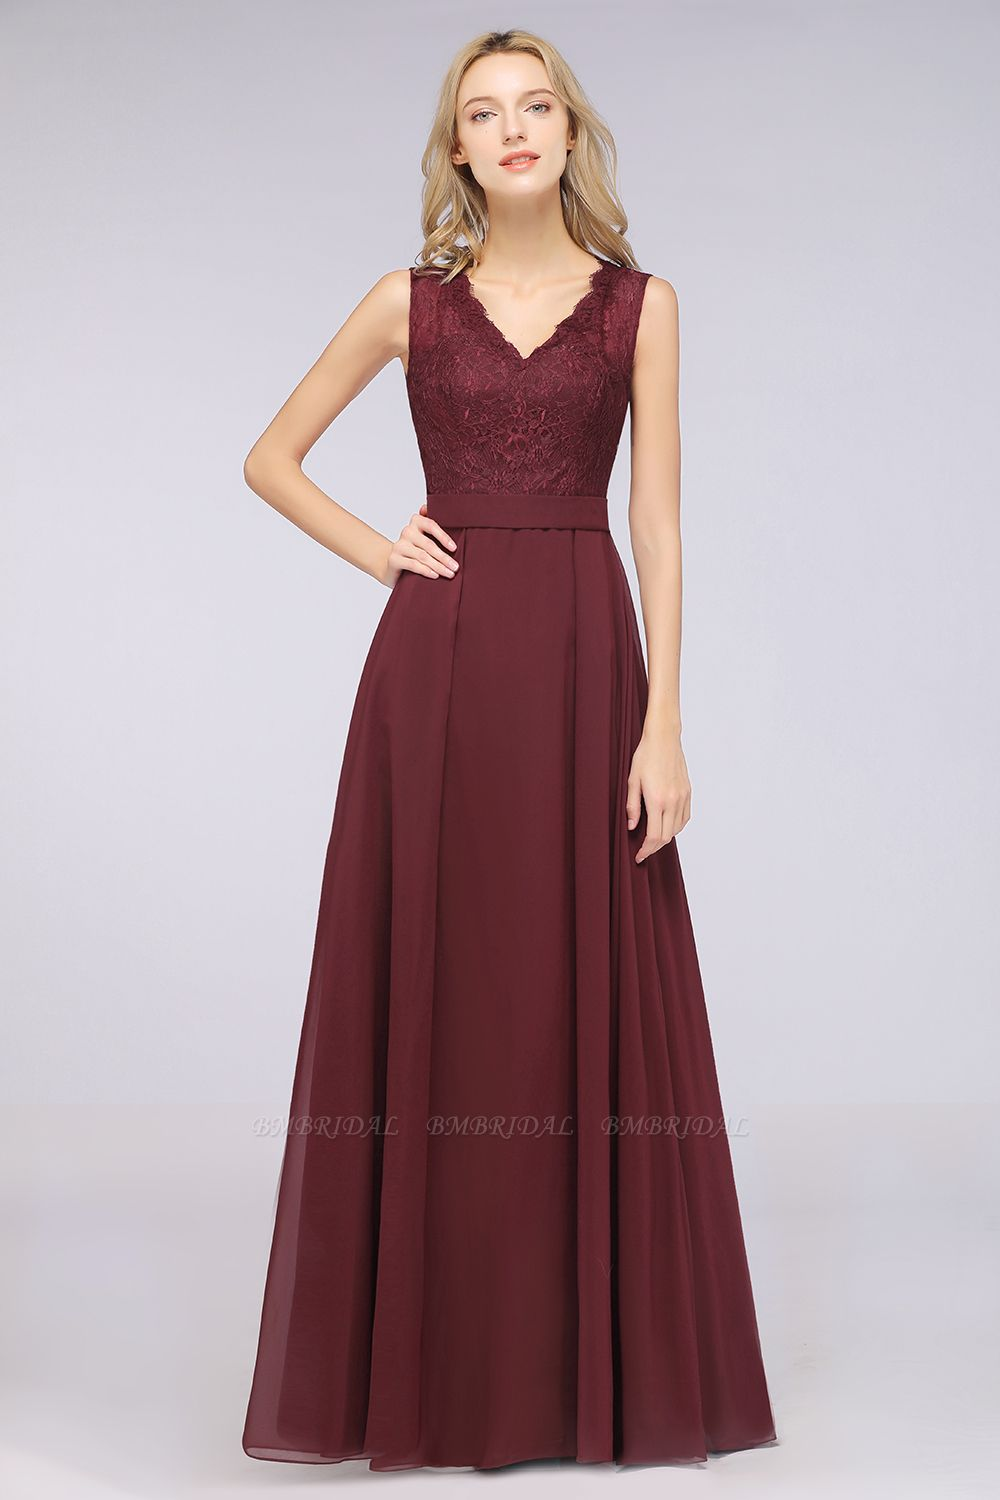 BMbridal Modest Chiffon V-Neck Burgundy Lace Bridesmaid Dresses Online